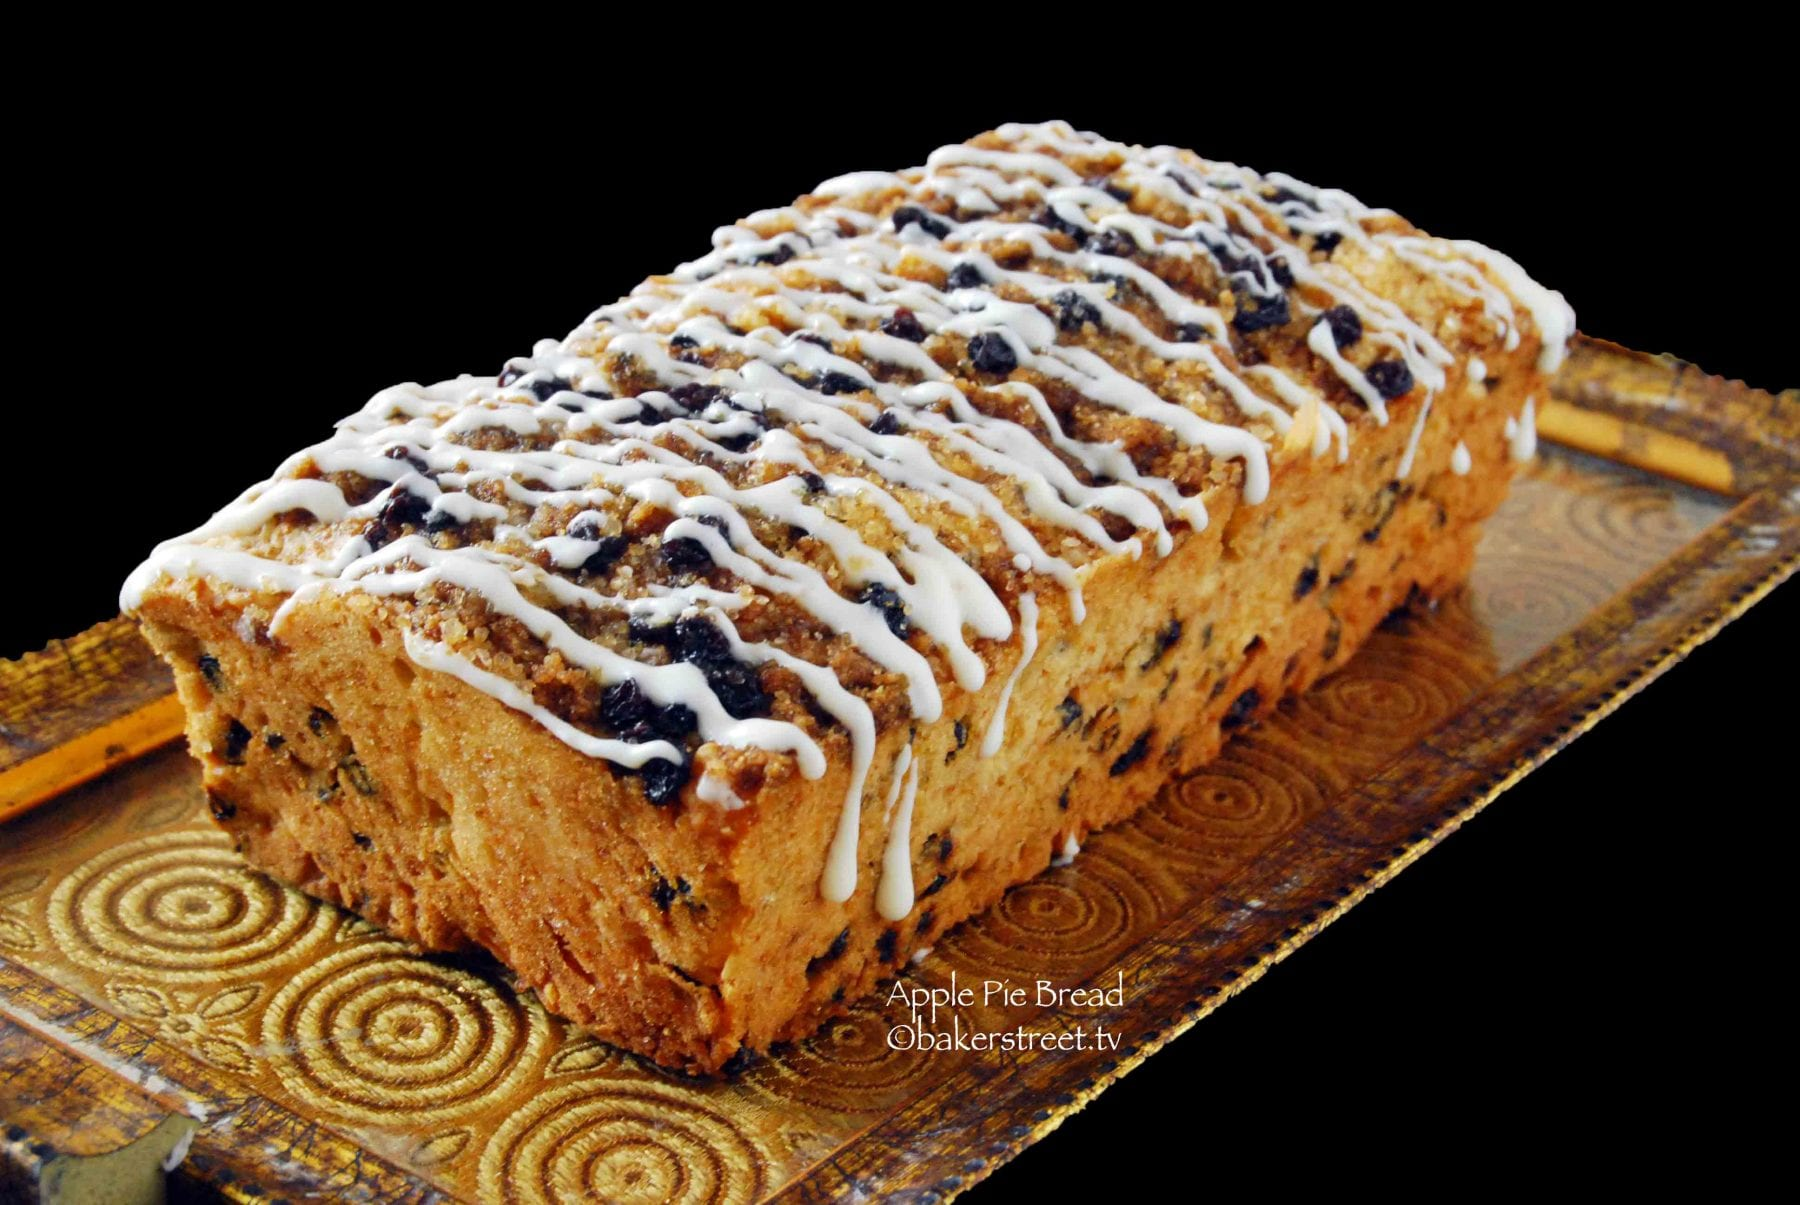 Apple Pie Bread1